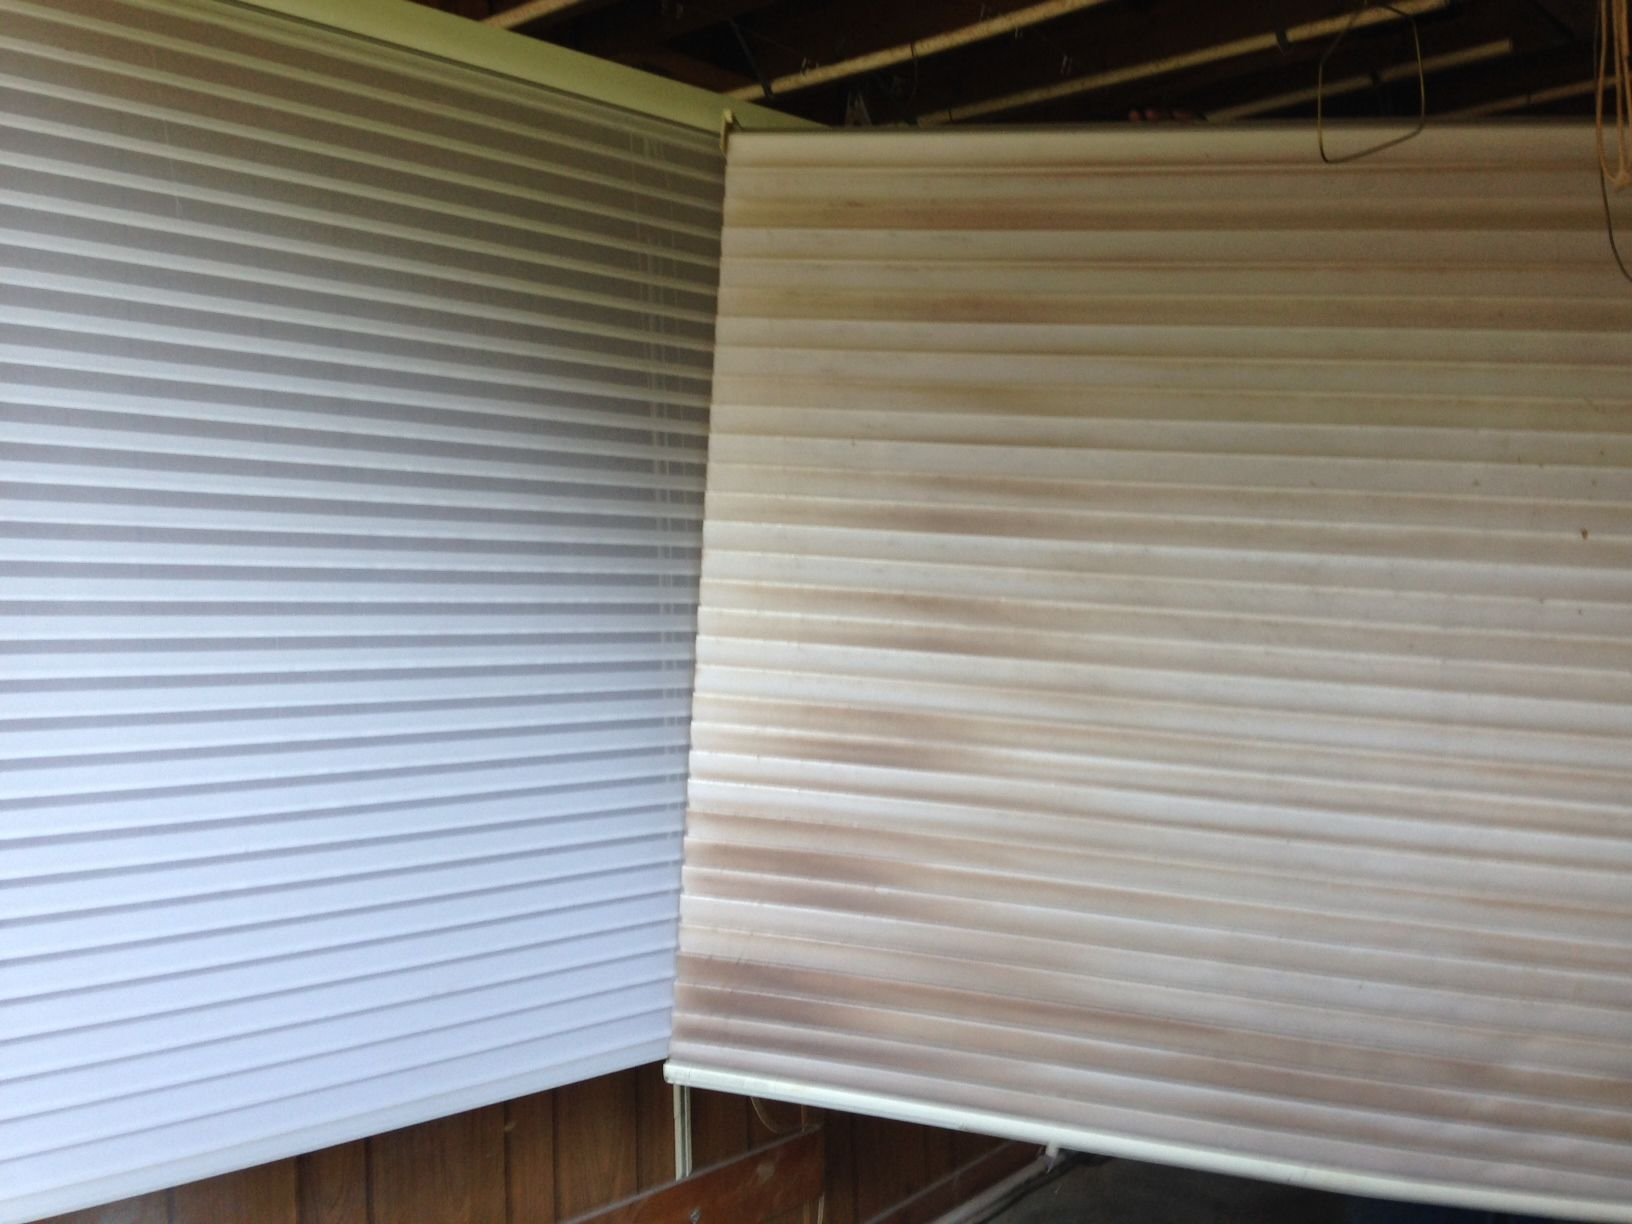 Ultrasonic Window Blind Cleaning Before And After Photos Of